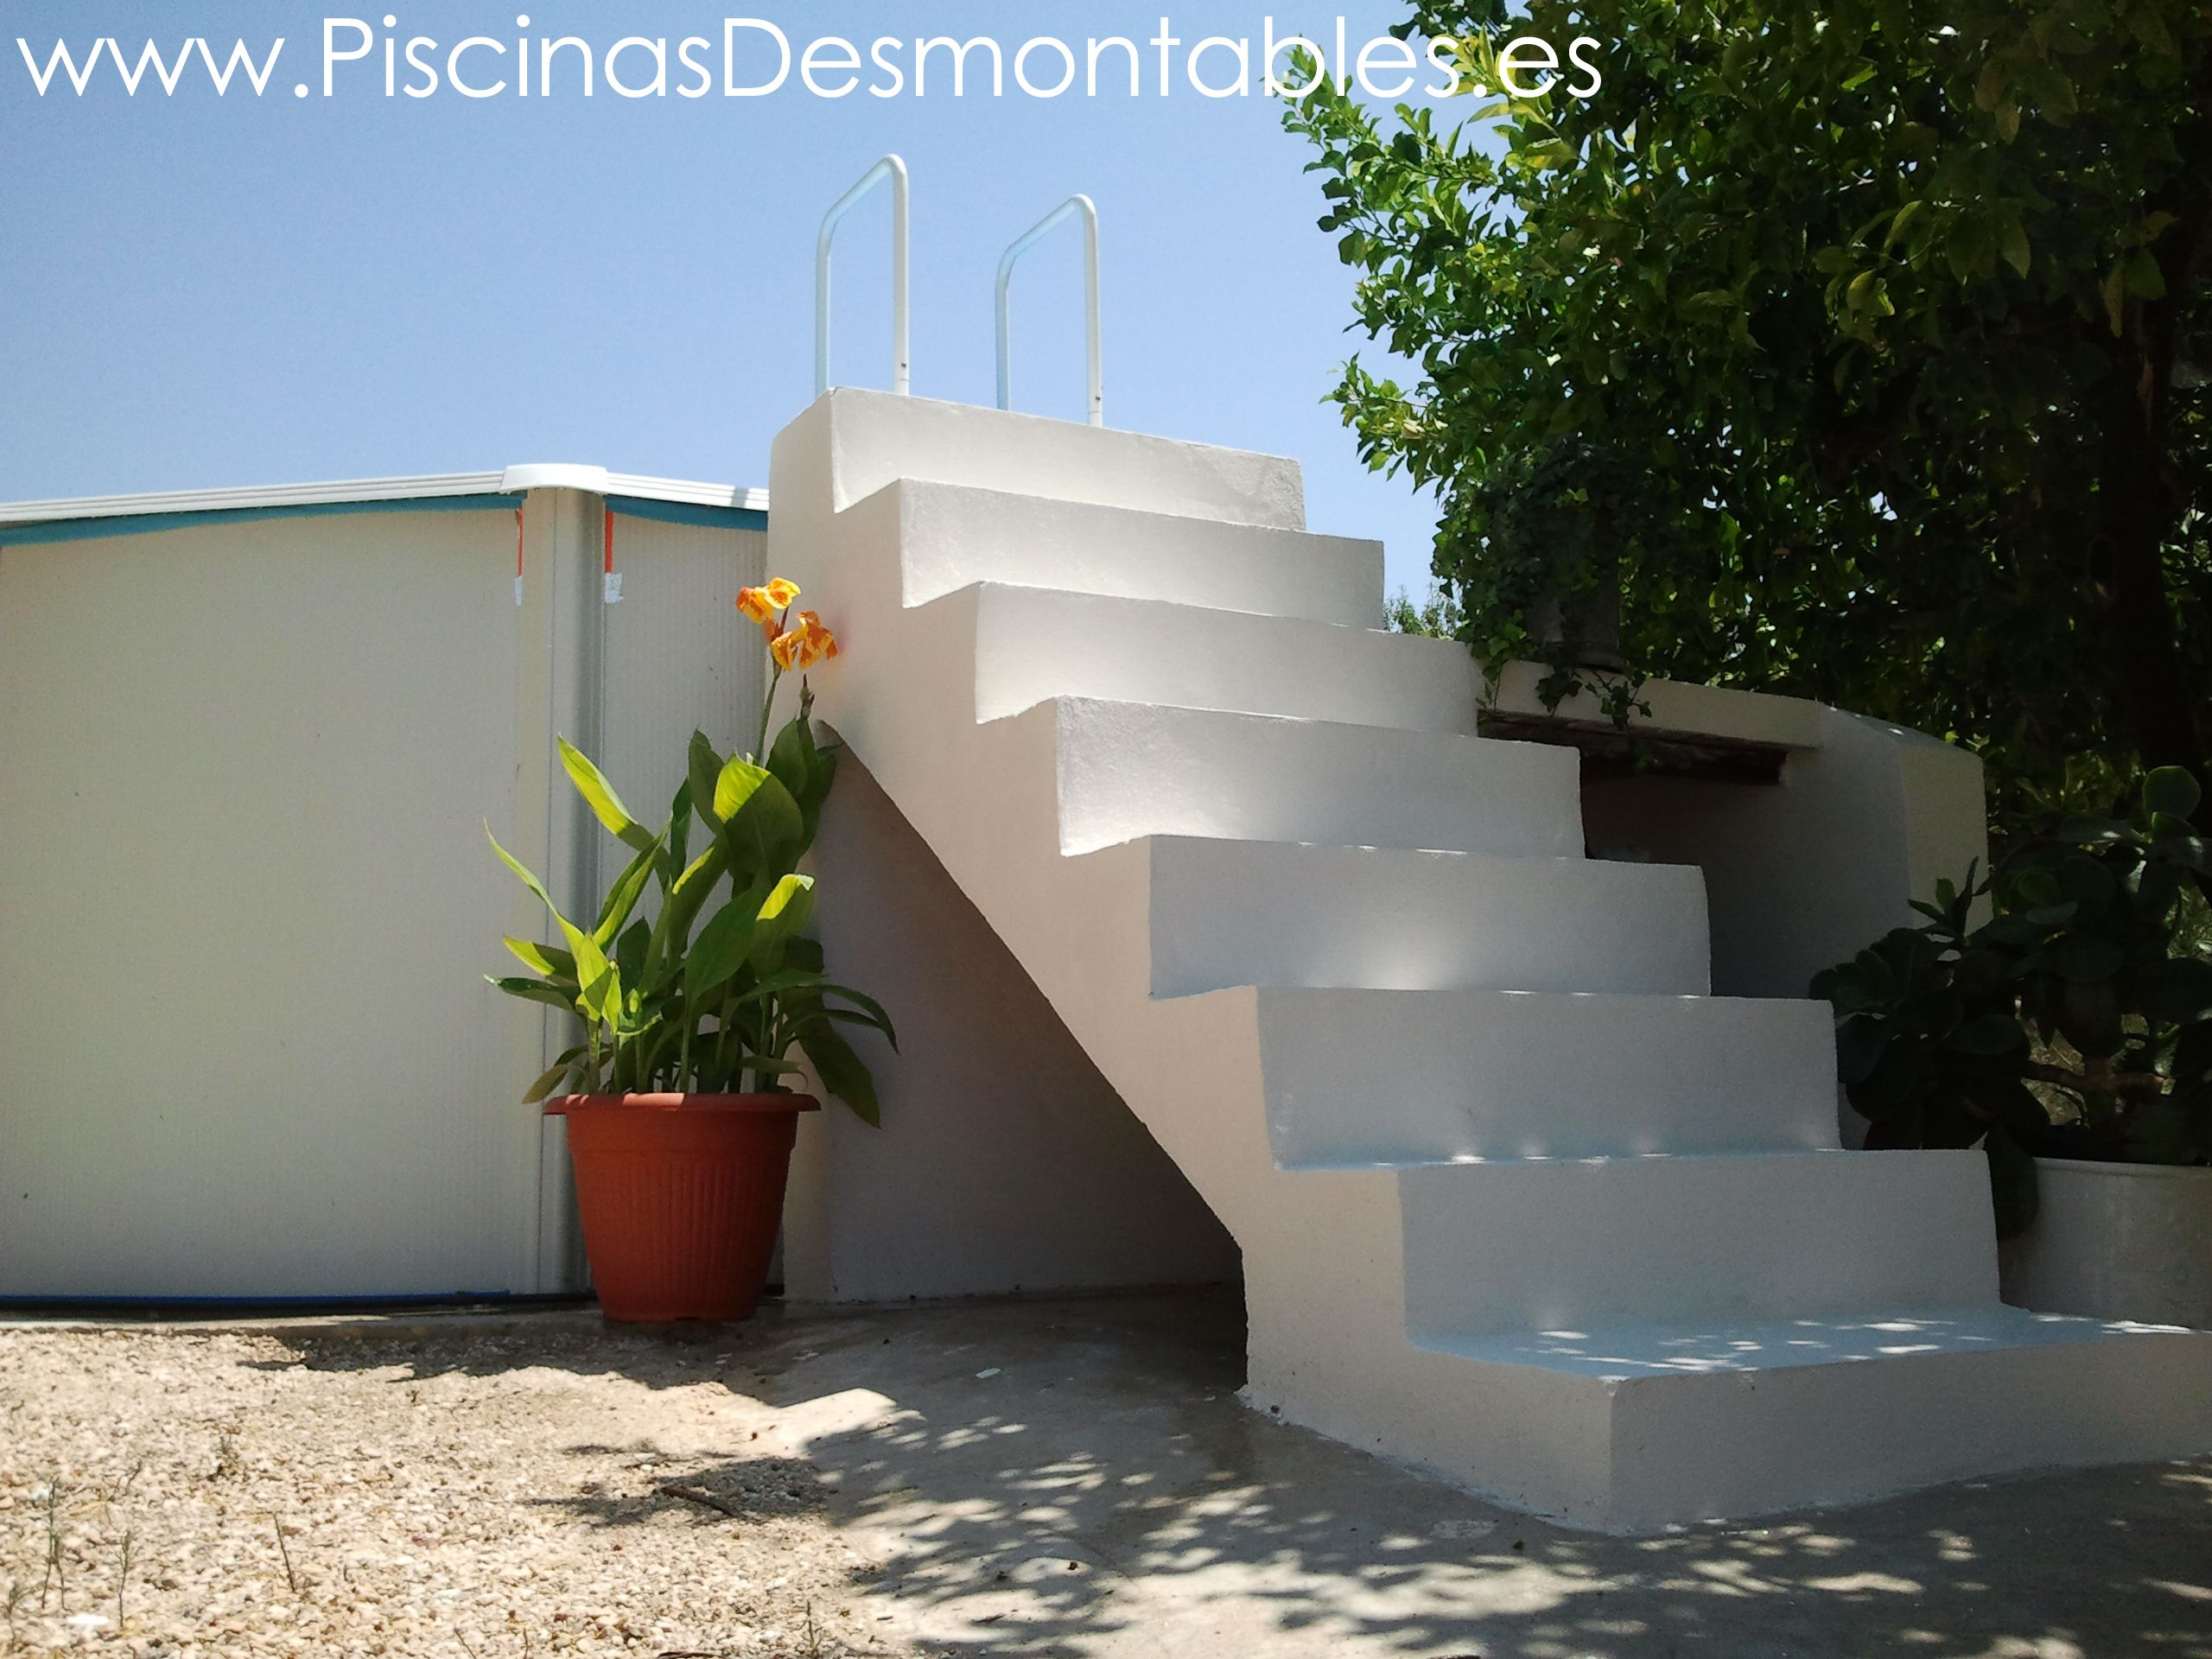 Escalera de cemento blanco para piscinas desmontables for Piscinas desmontables